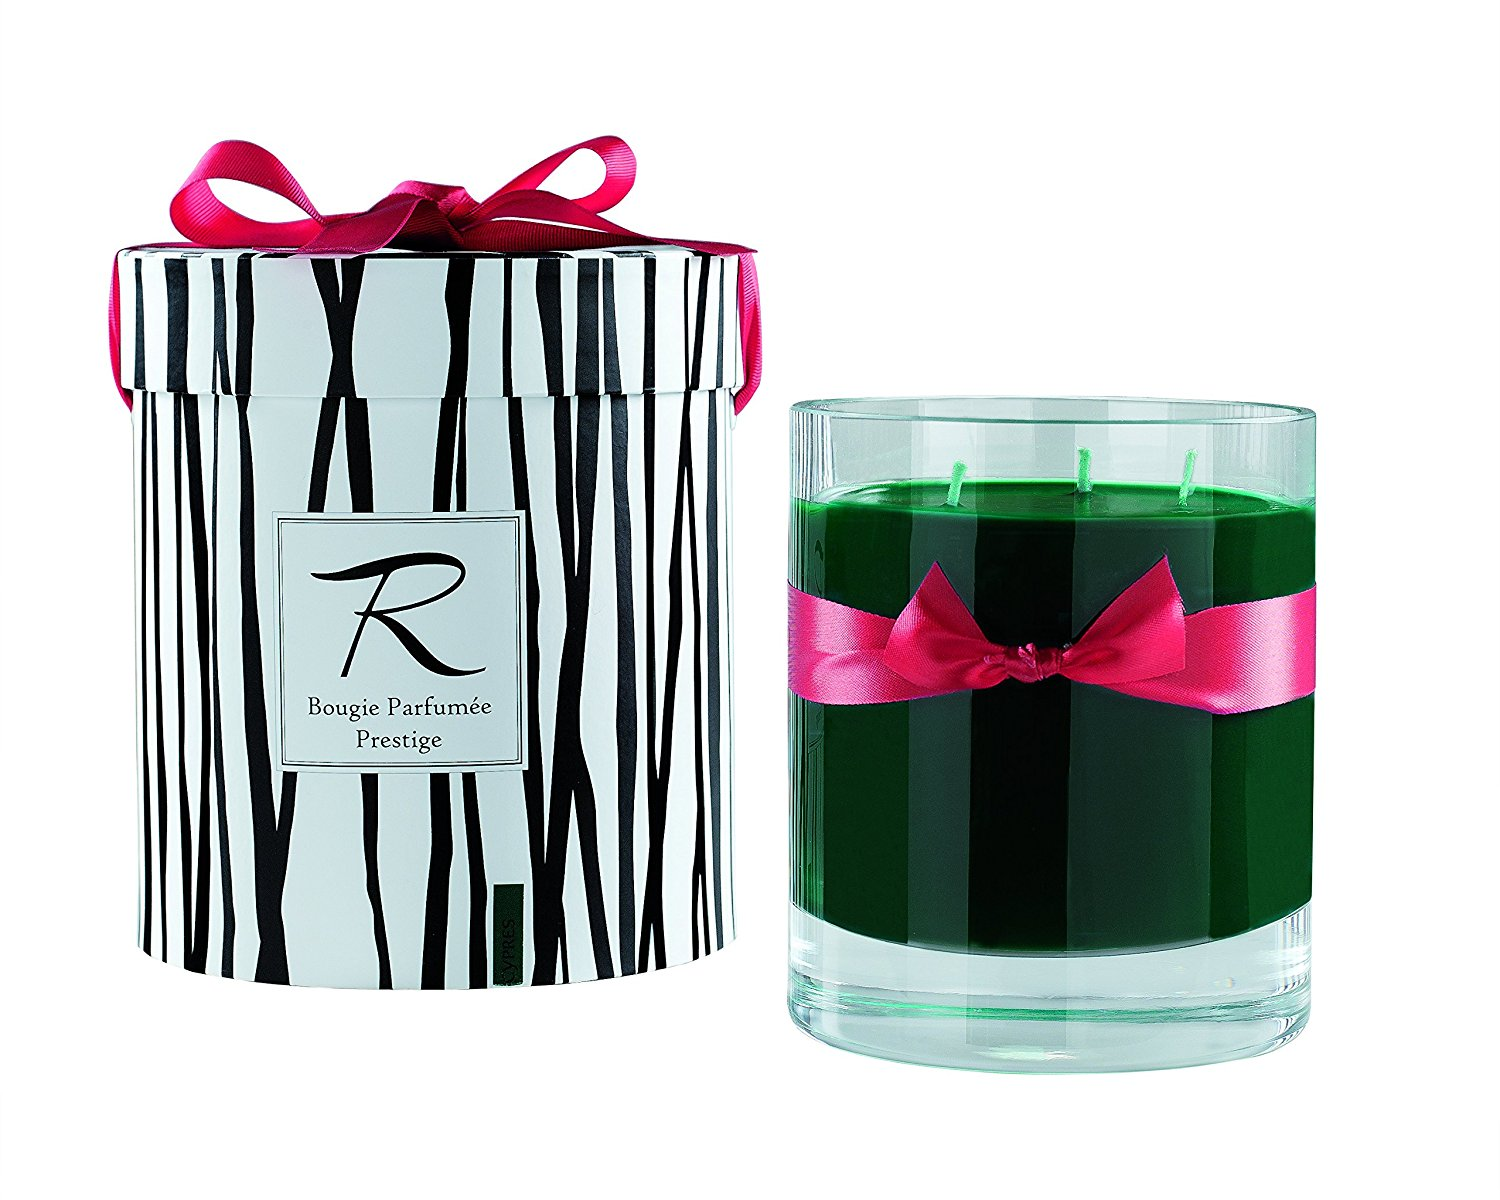 """Rigaud Paris, Cypres Bougie Parfumee Prestige, Large 3-wick """"Prestige"""" Model Candle, Green, 6"""" Tall, 150 Hours Burn, 26.5 Oz, Made in France"""